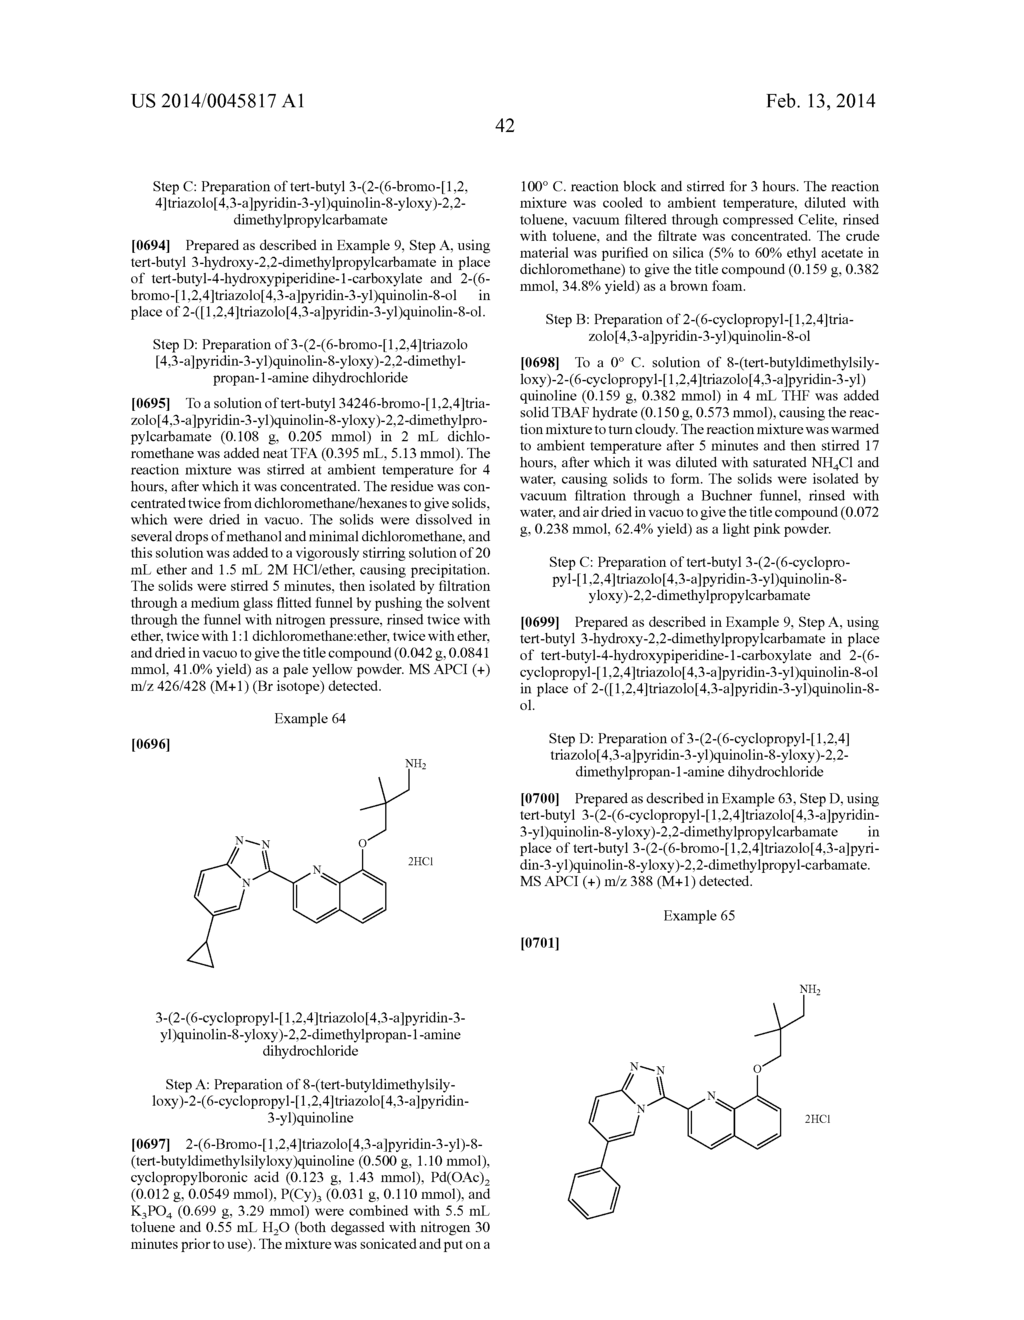 TRIAZOLOPYRIDINE COMPOUNDS AS PIM KINASE INHIBITORS - diagram, schematic, and image 52